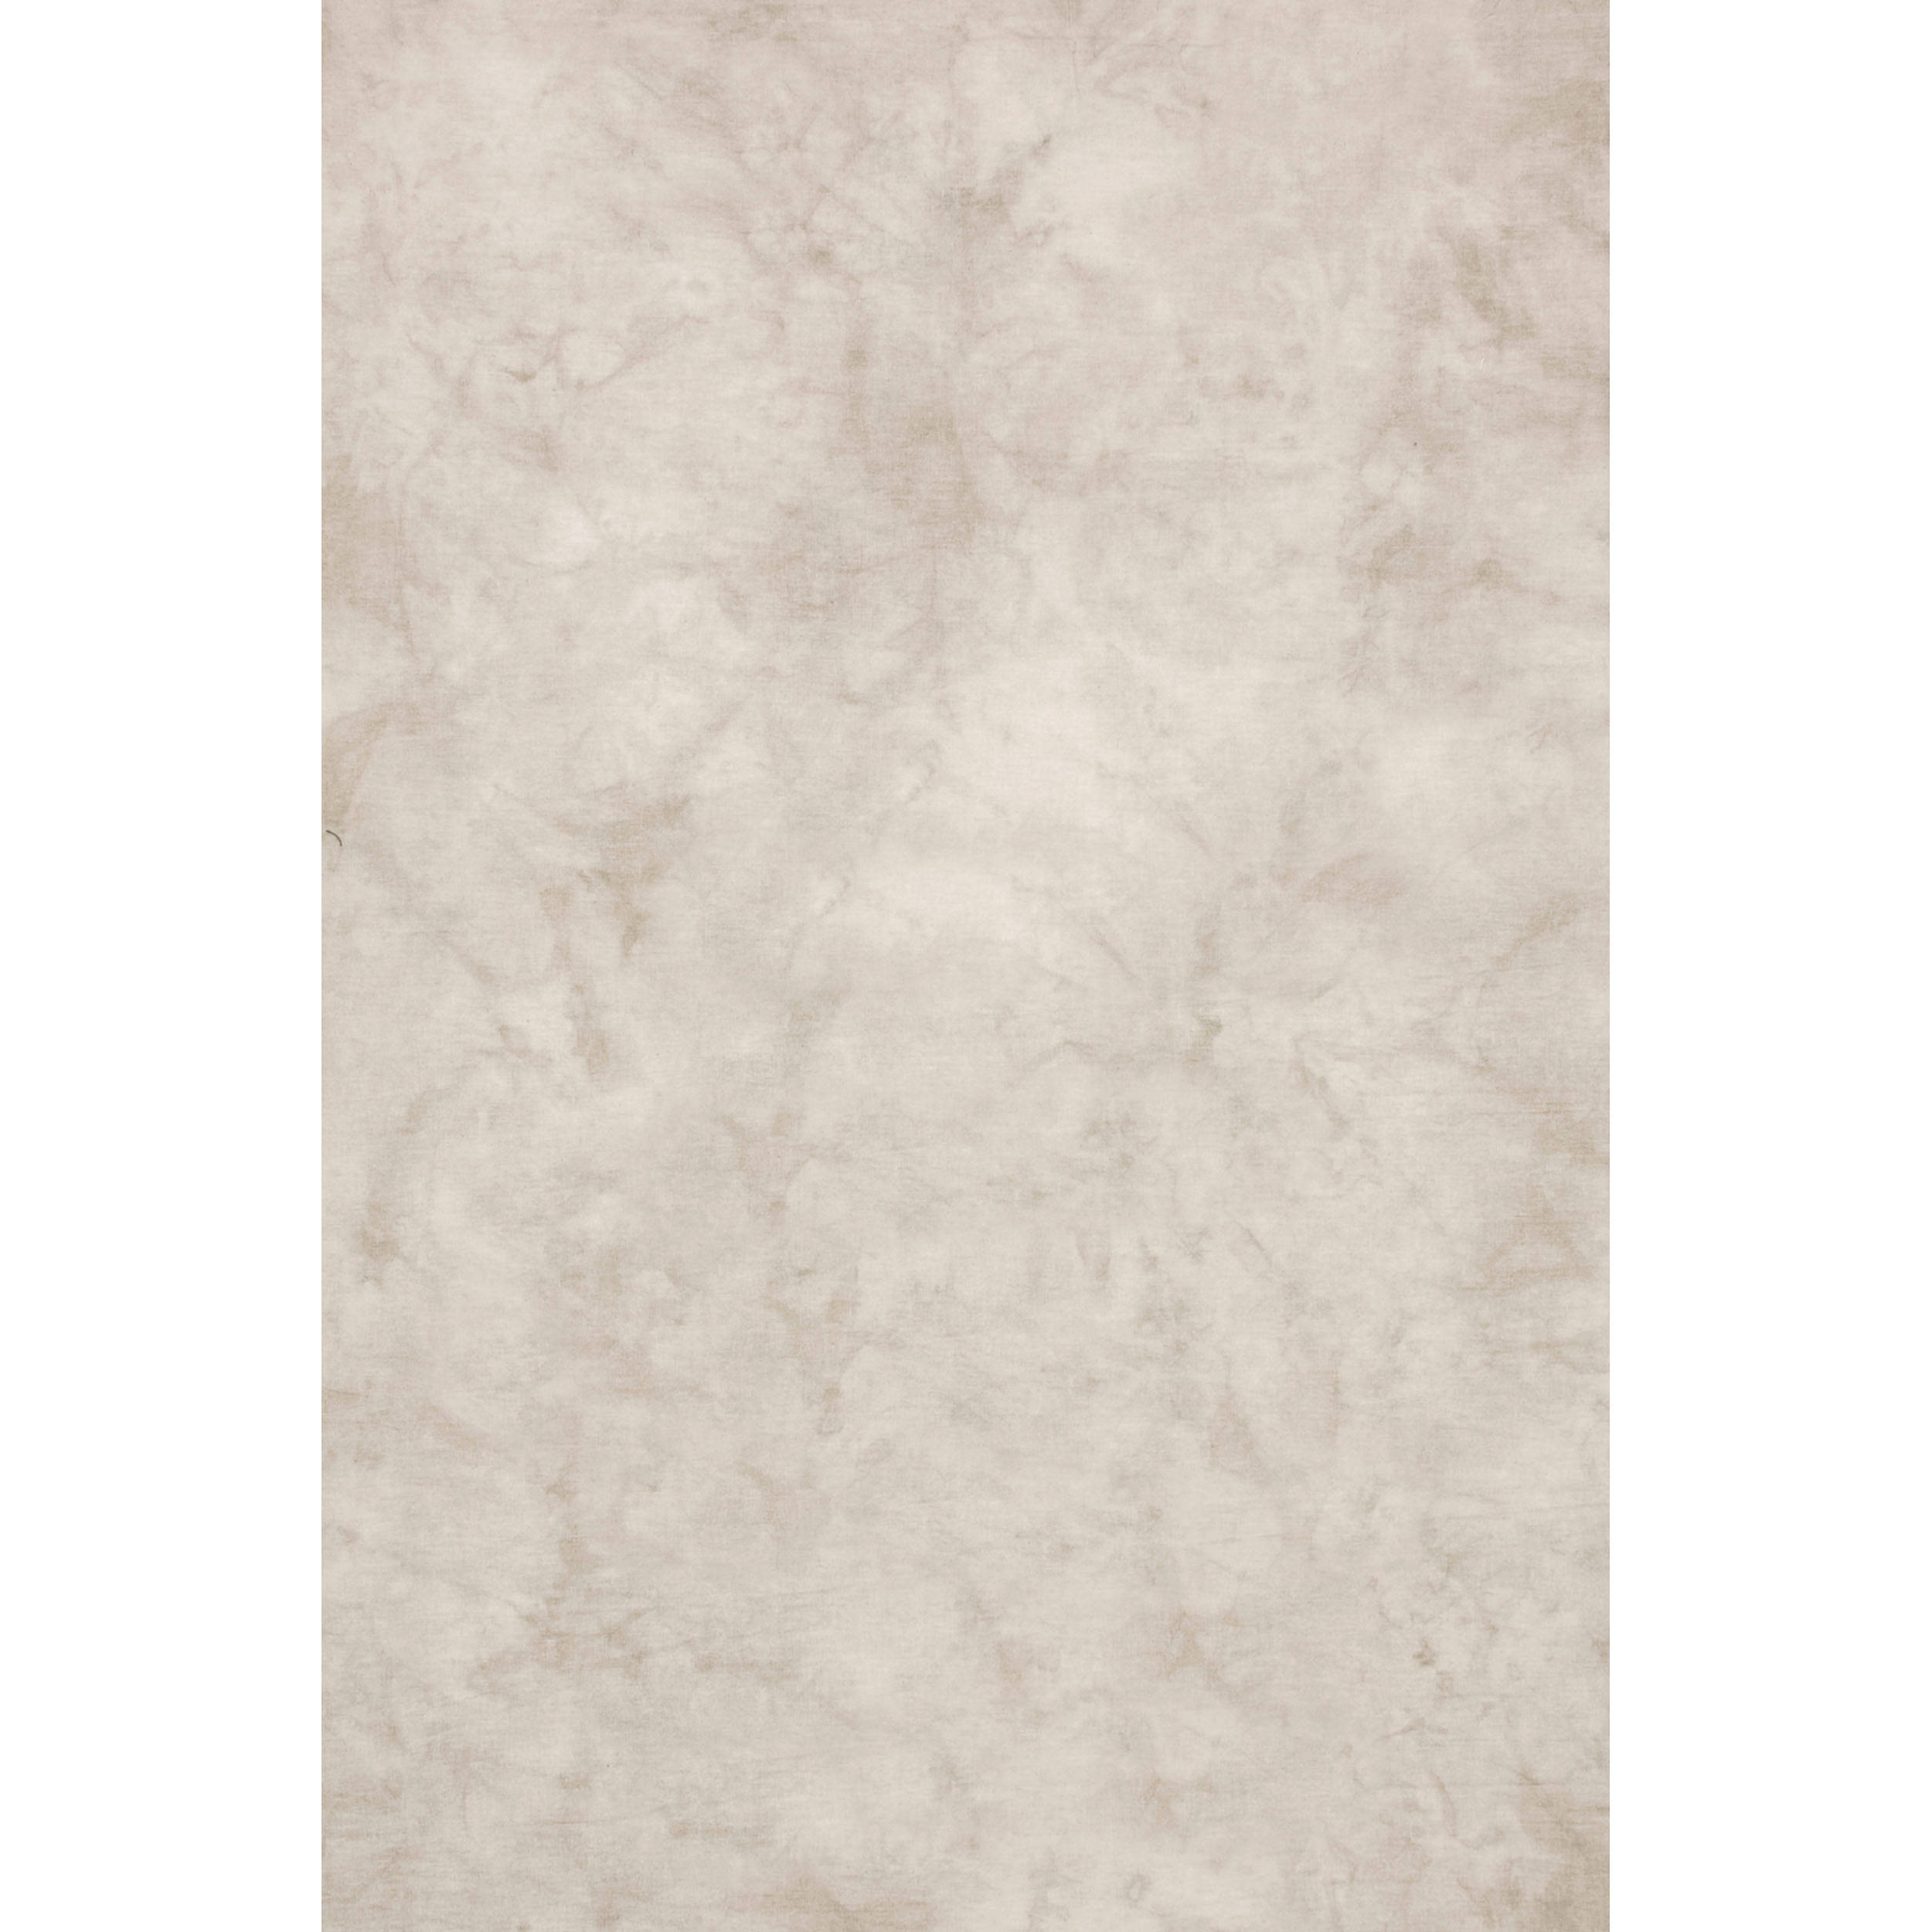 Backdrop Alley Crushed Muslin (10 x 24', Whitewash) BATD24WTWS